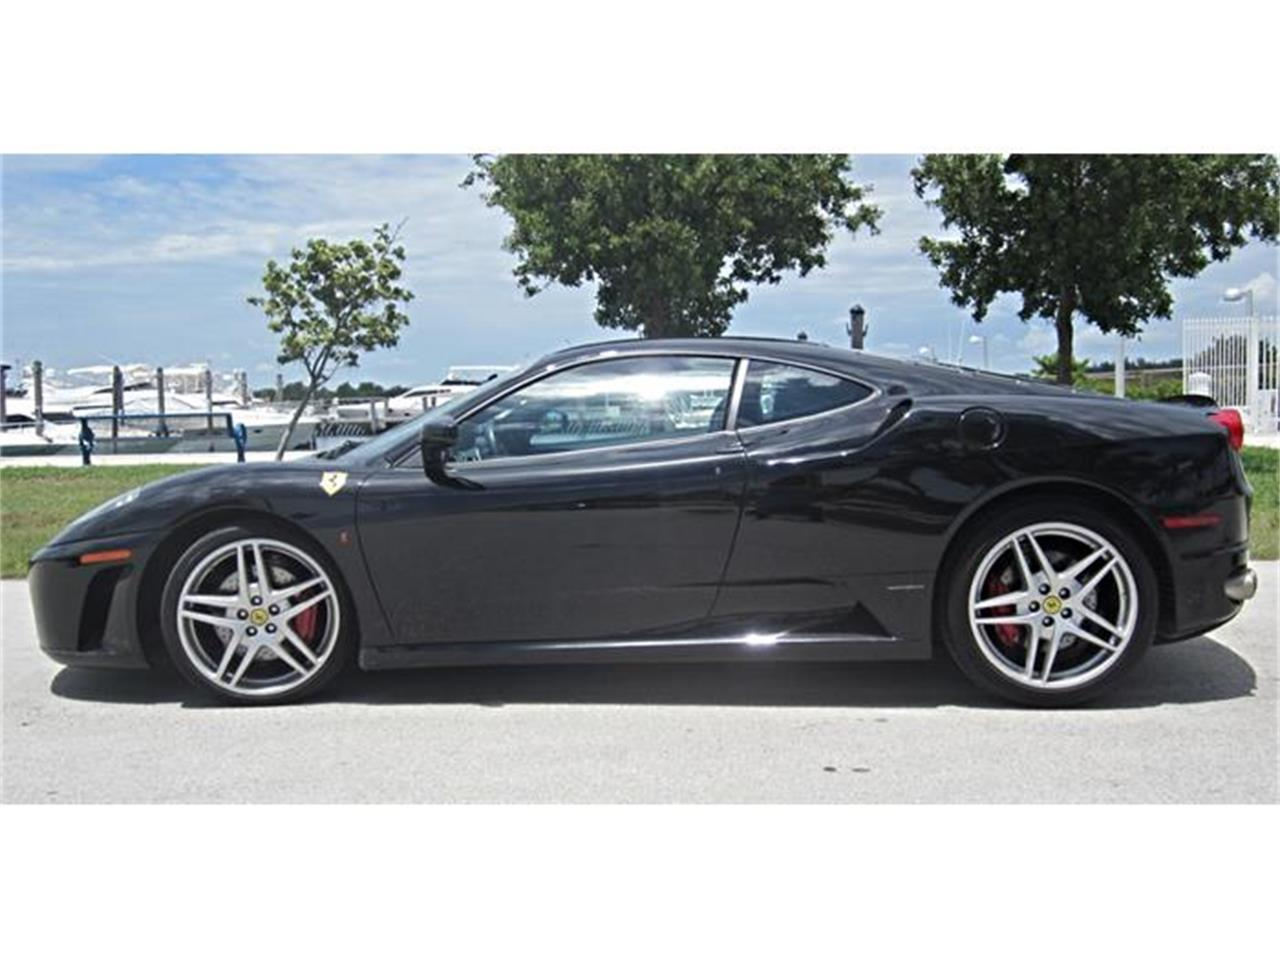 2005 Ferrari 430 (CC-775451) for sale in San Antonio, Texas